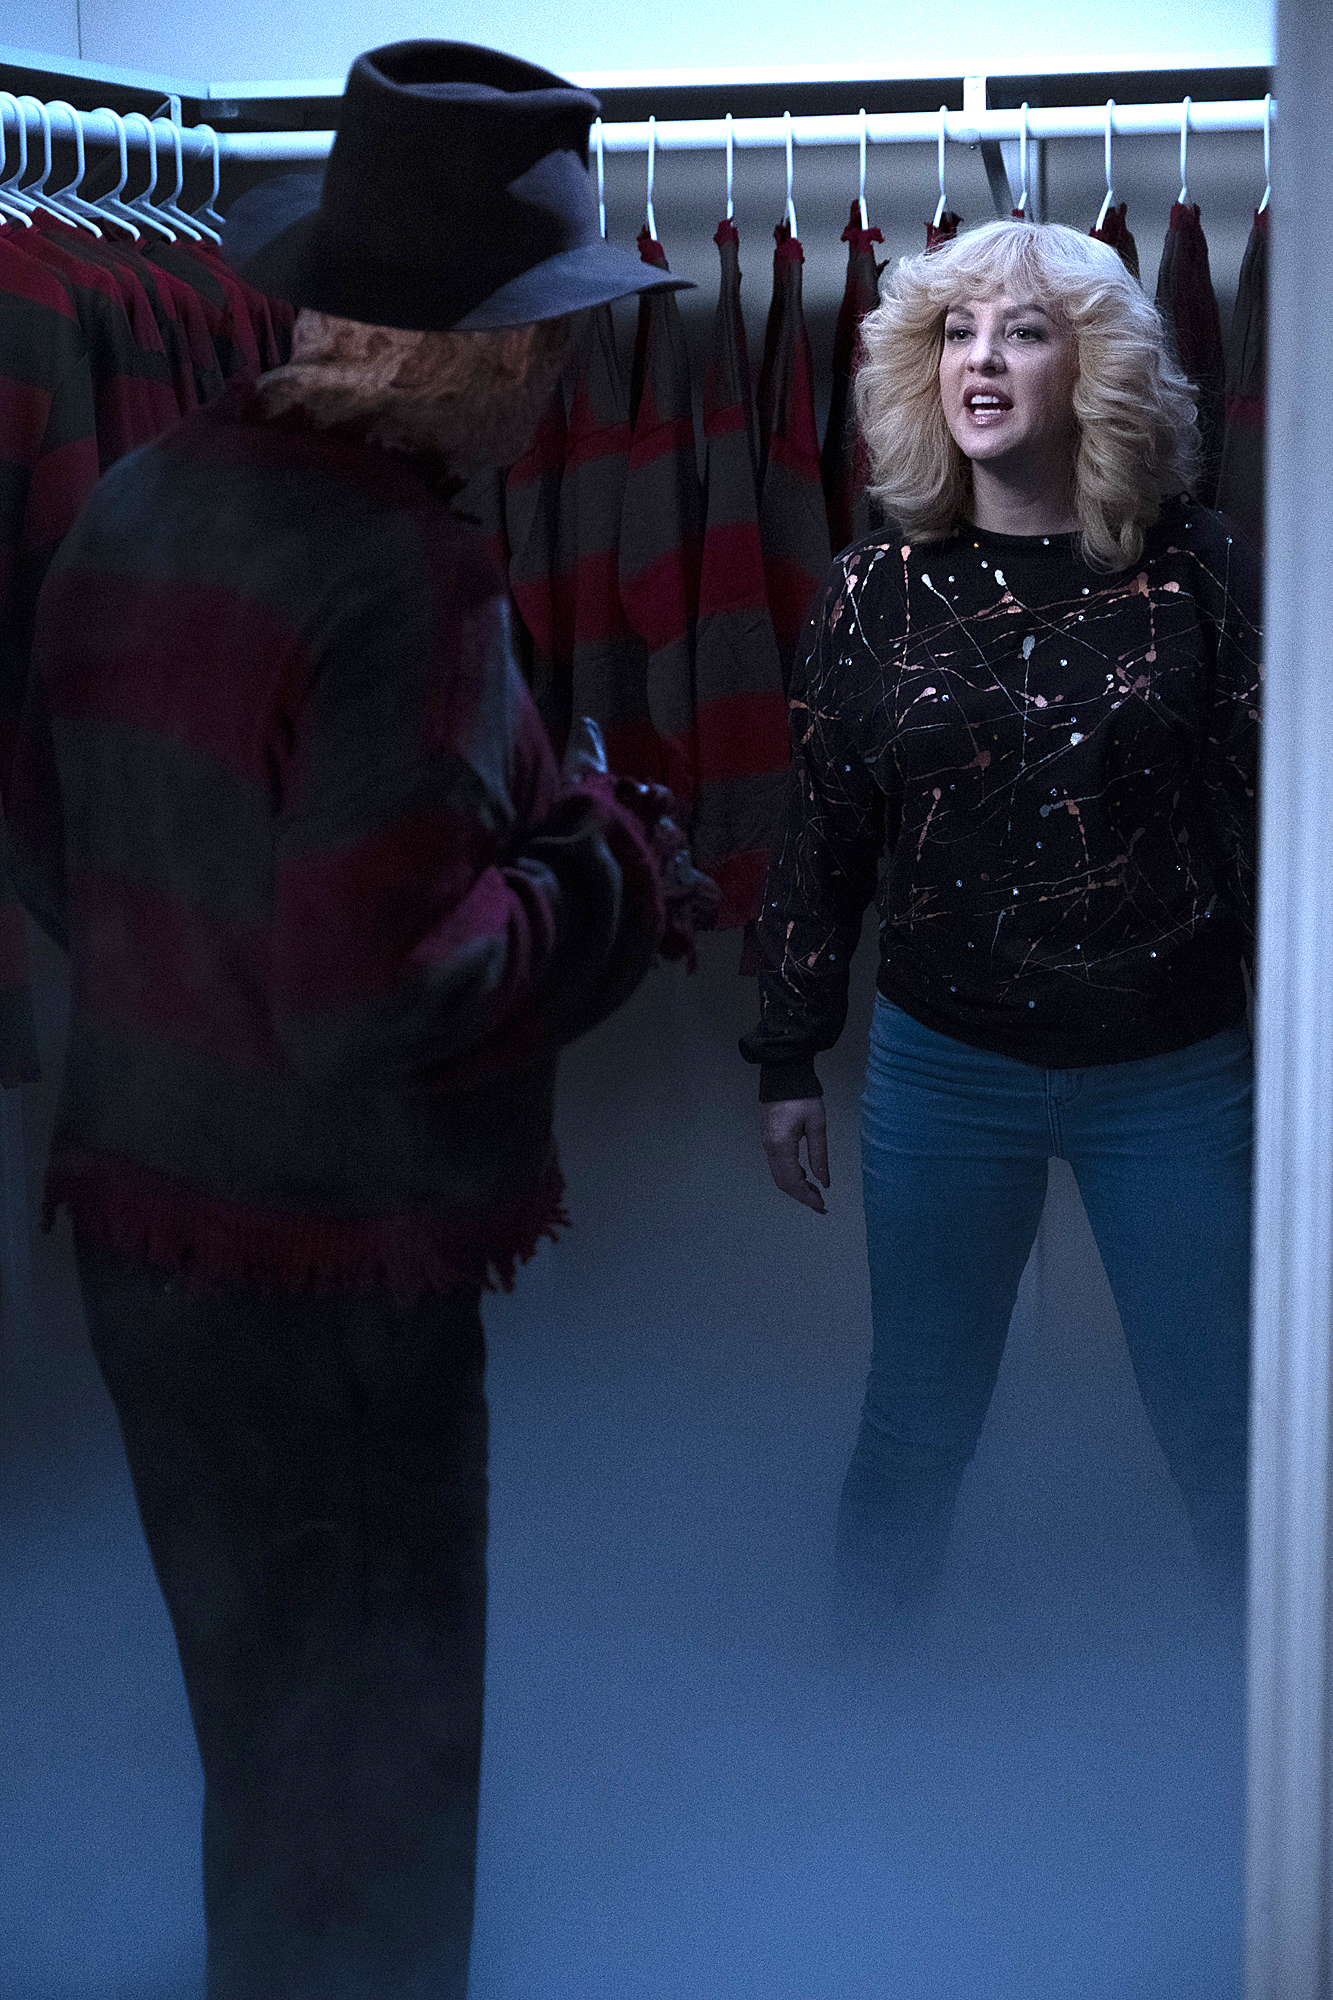 Step aside, Freddy — Beverly has worse things to worry about